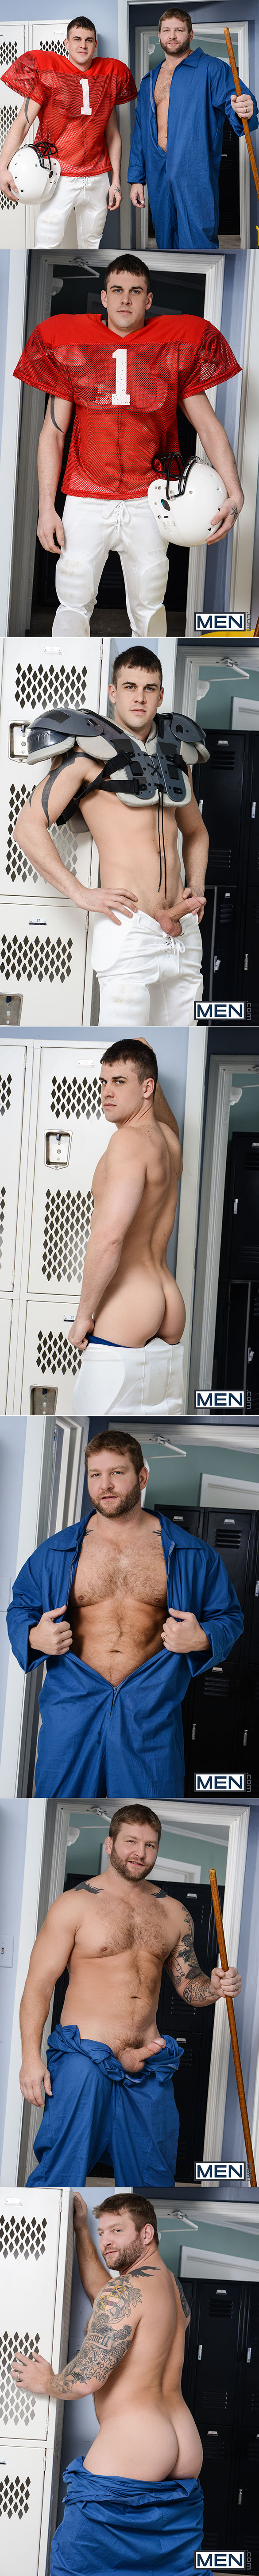 "Men.com: Colby Jansen botoms for Darin Silvers in ""Janitor's Closet, Part 3"""